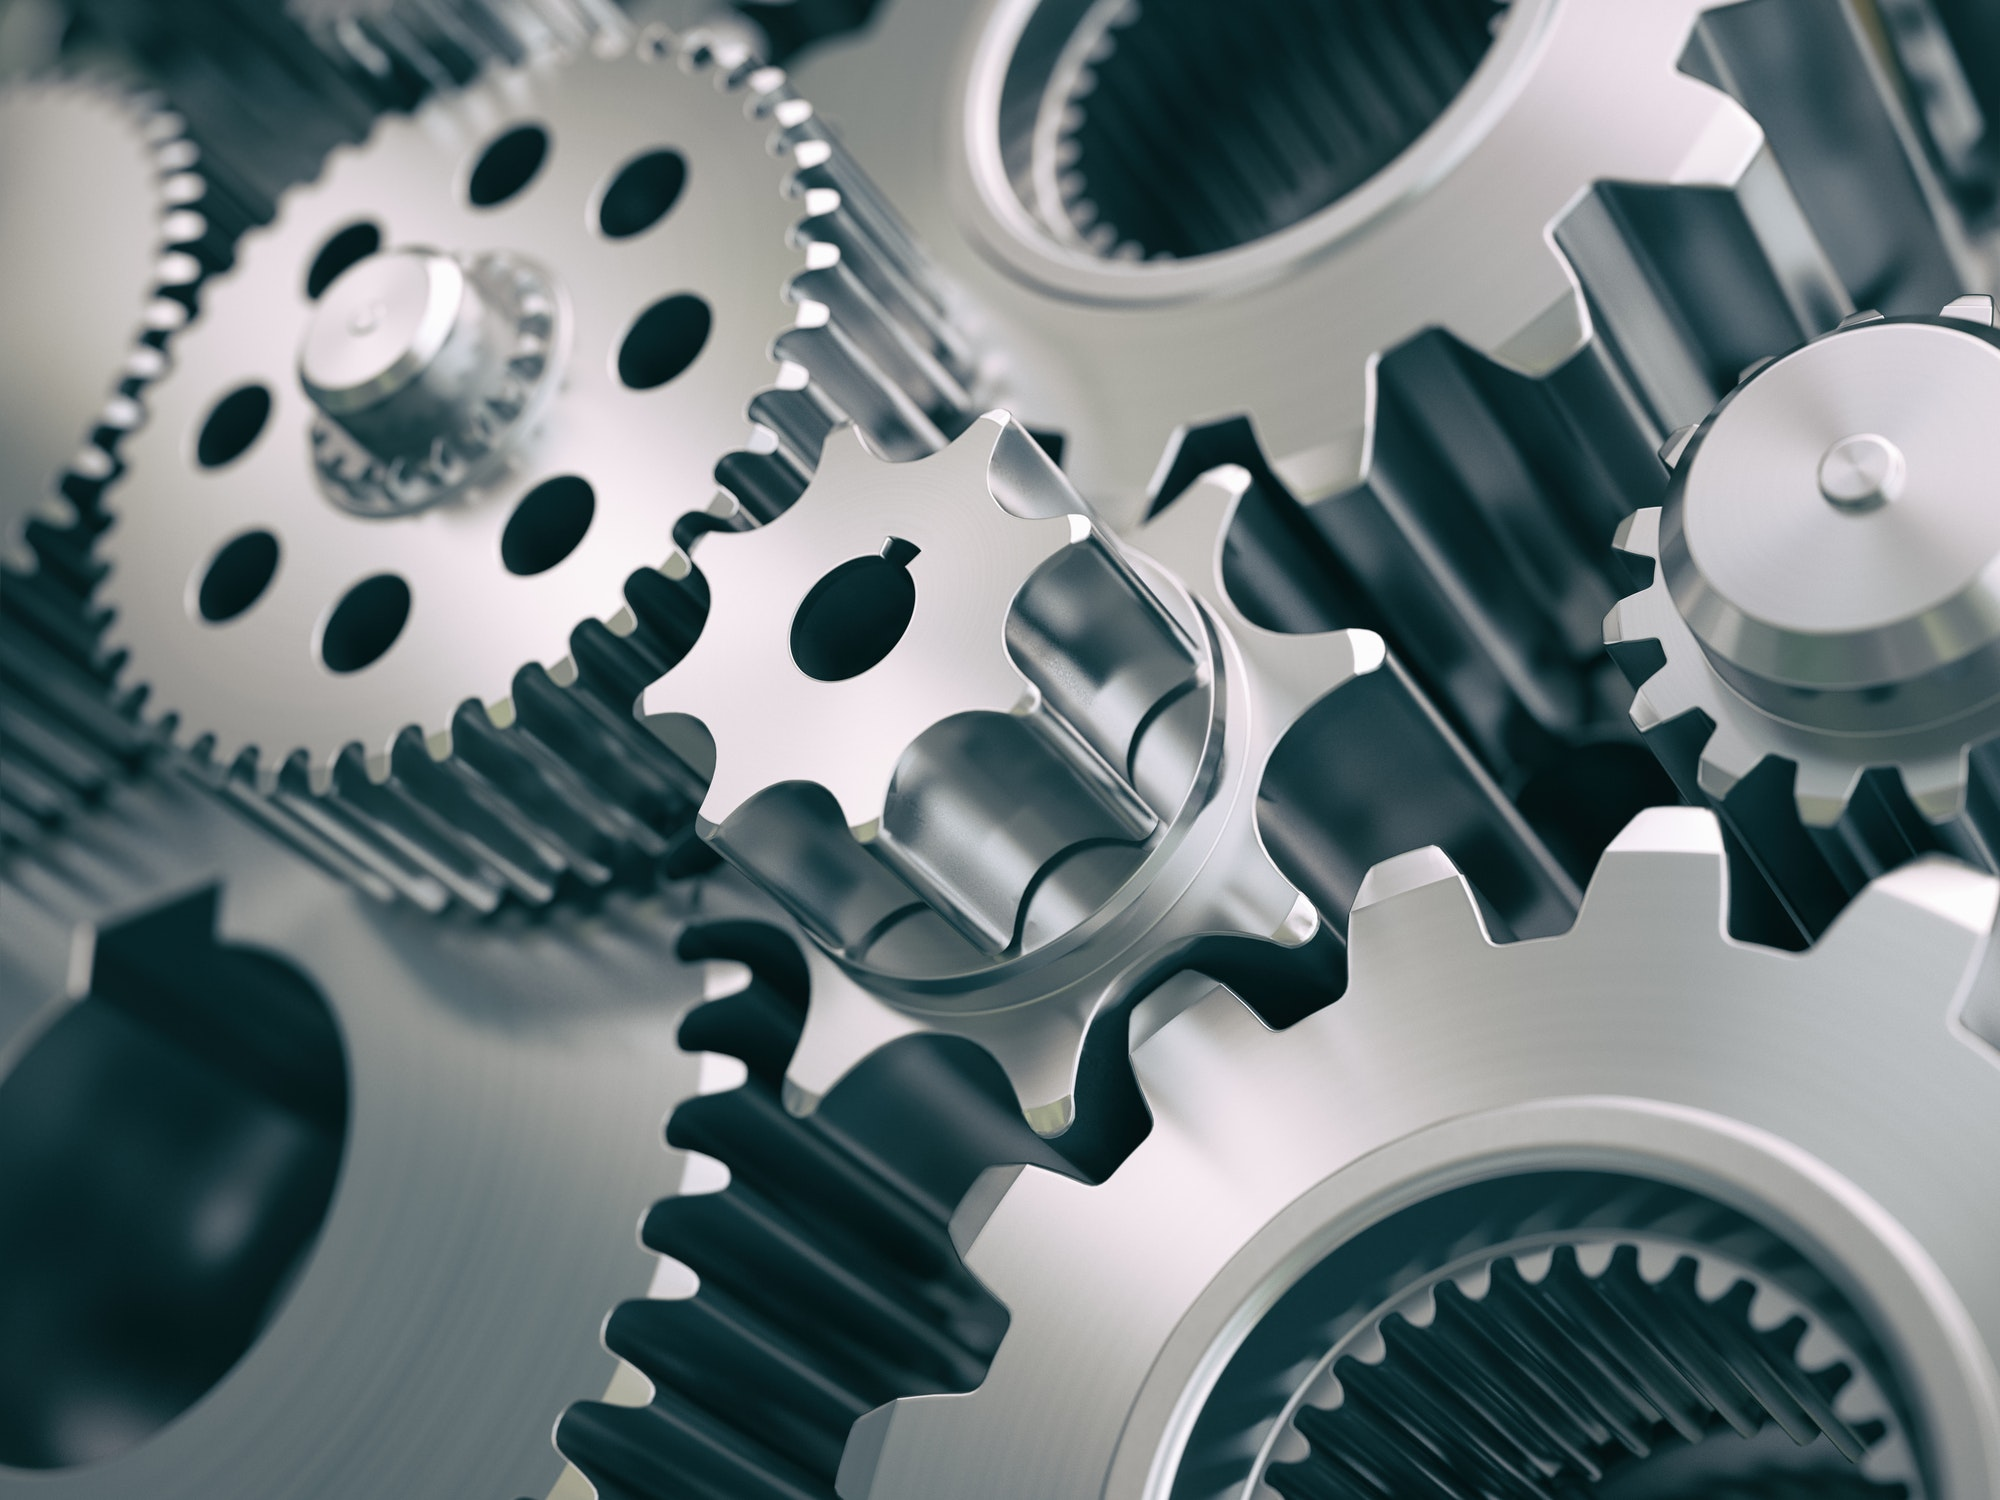 Gears and cogwheels engine industrial background.